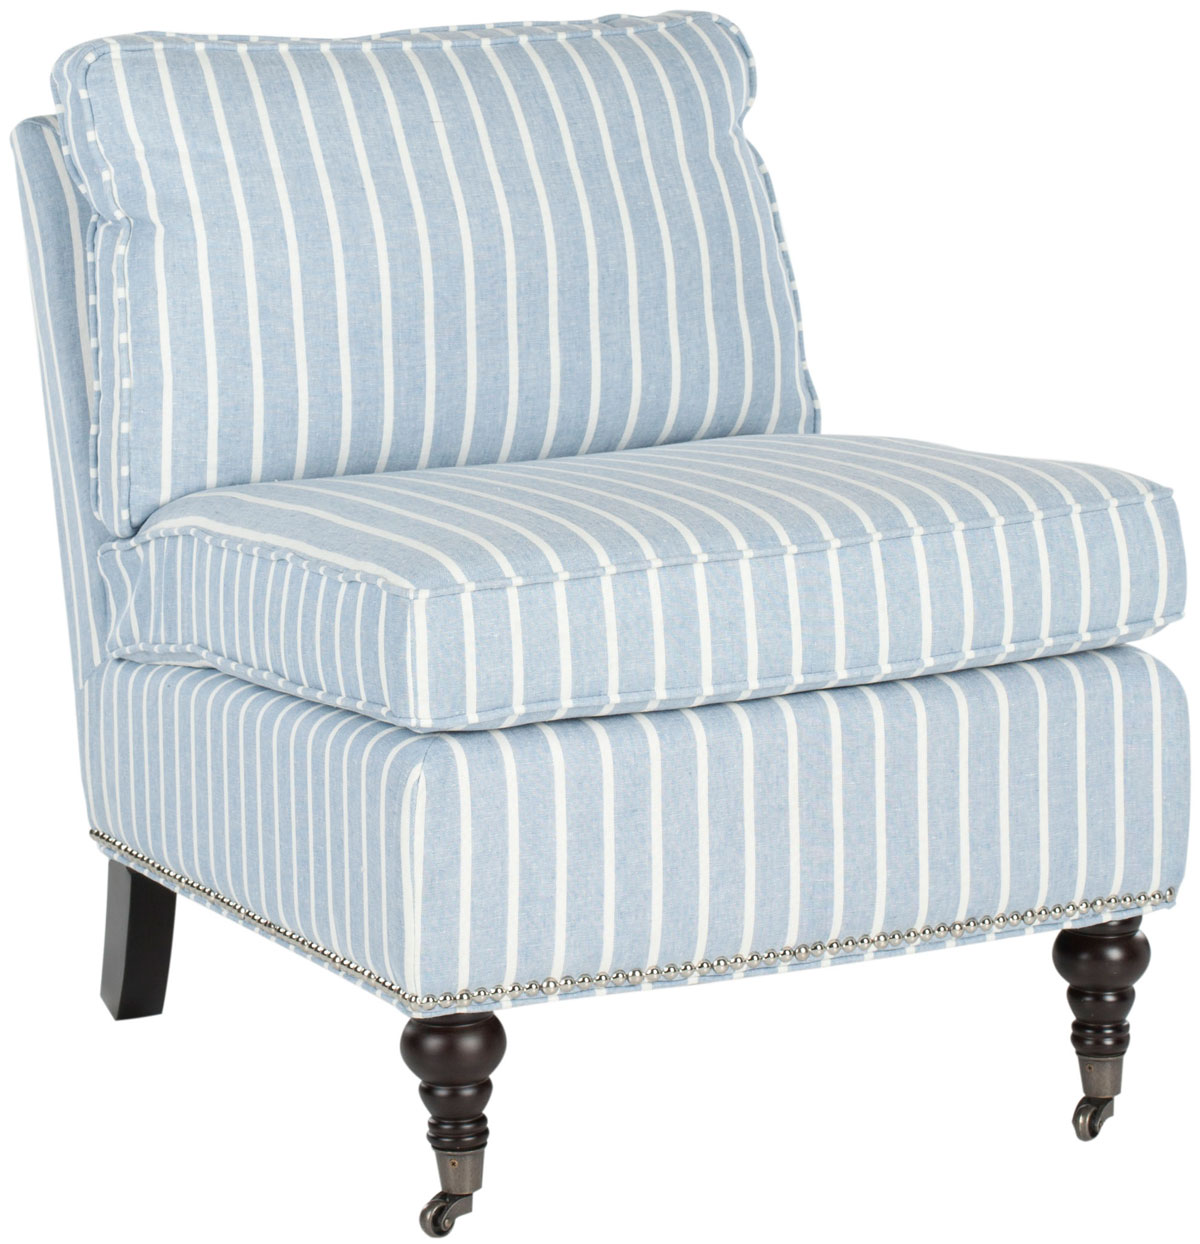 RANDY SLIPPER CHAIR MCR4584G ACCENT CHAIRS